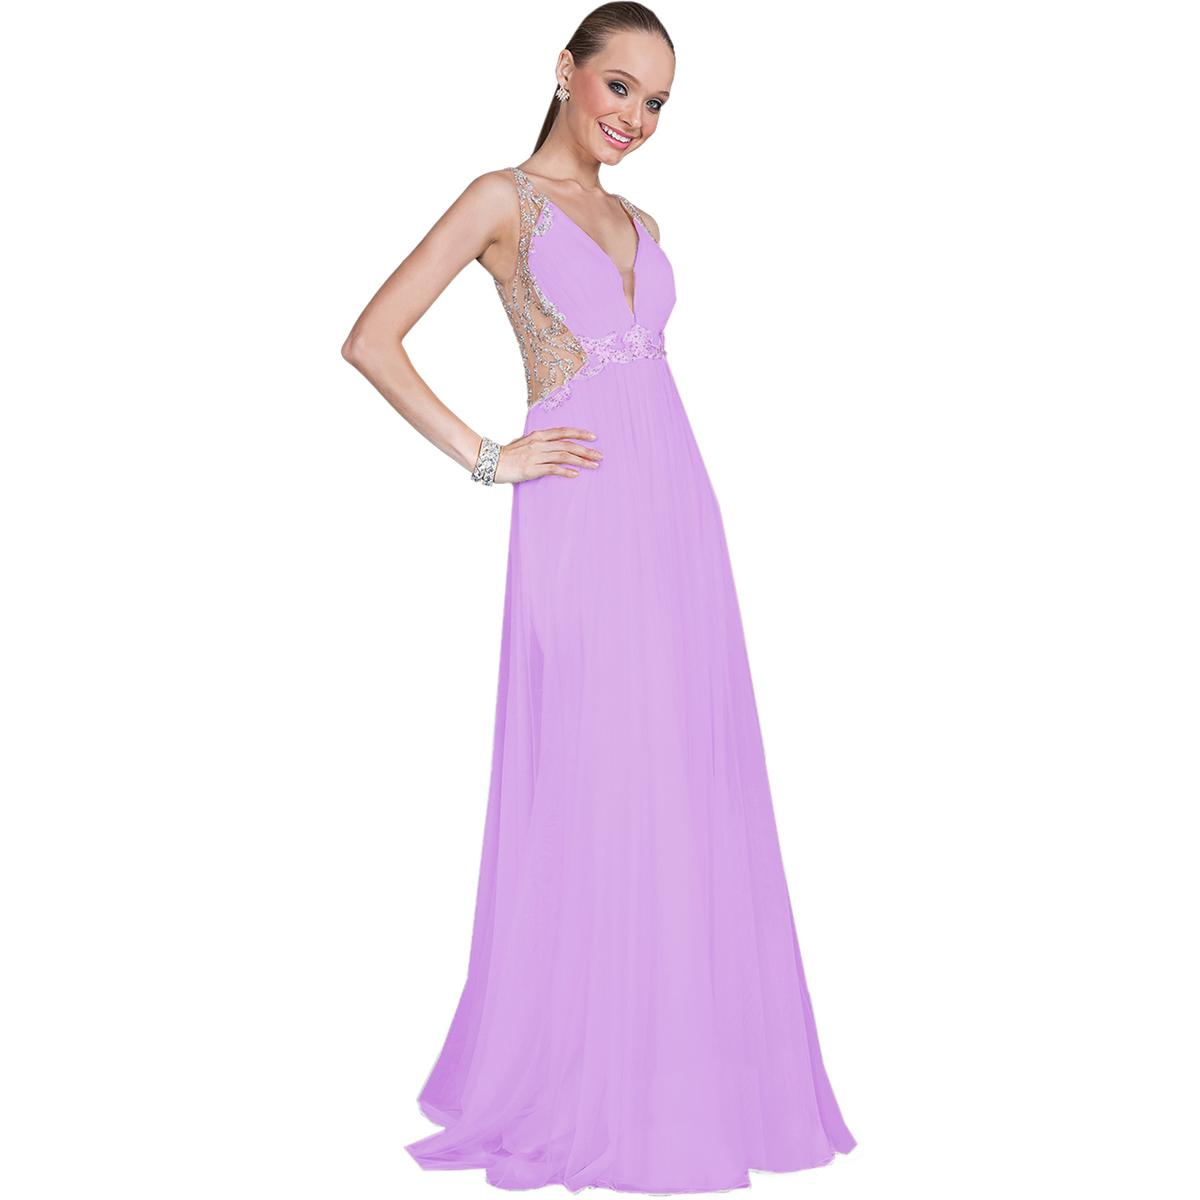 Terani Couture lila Prom Cut-Out Full-Length Evening Dress Gown 0 BHFO 4830